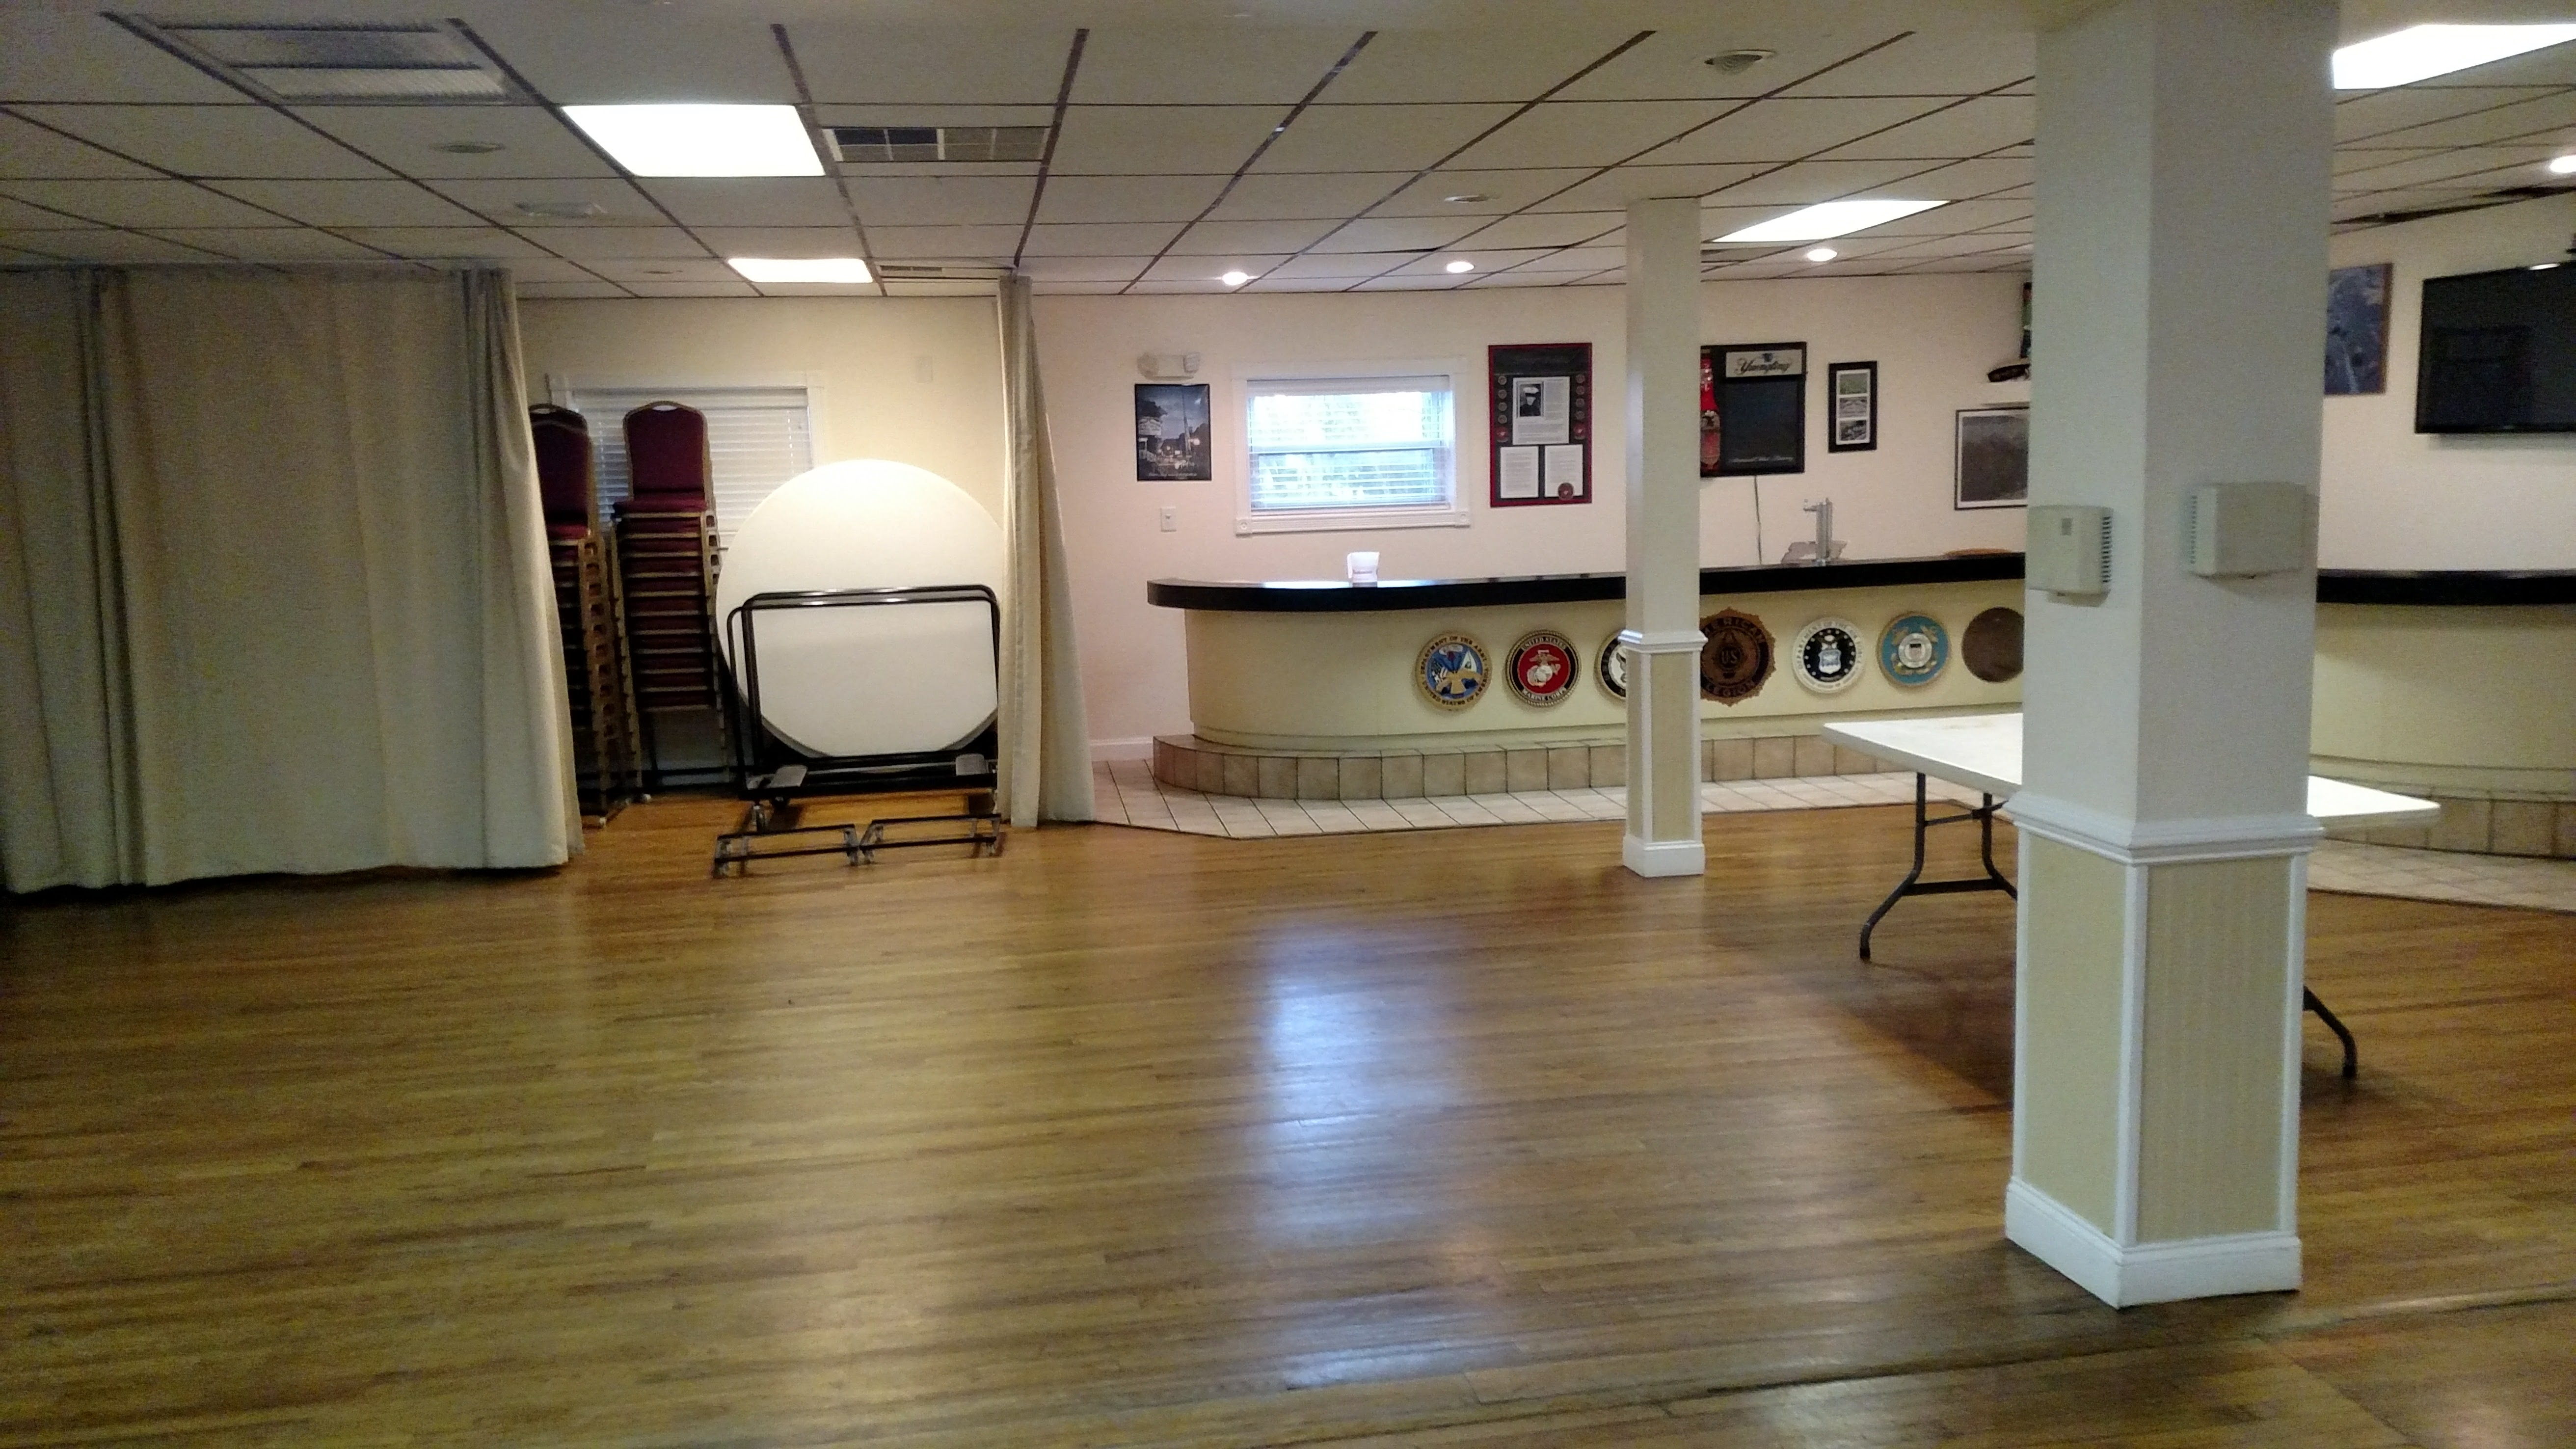 How To Clean Kitchen Floors >> American Legion Post 371 - George Walton Hall Rentals in ...